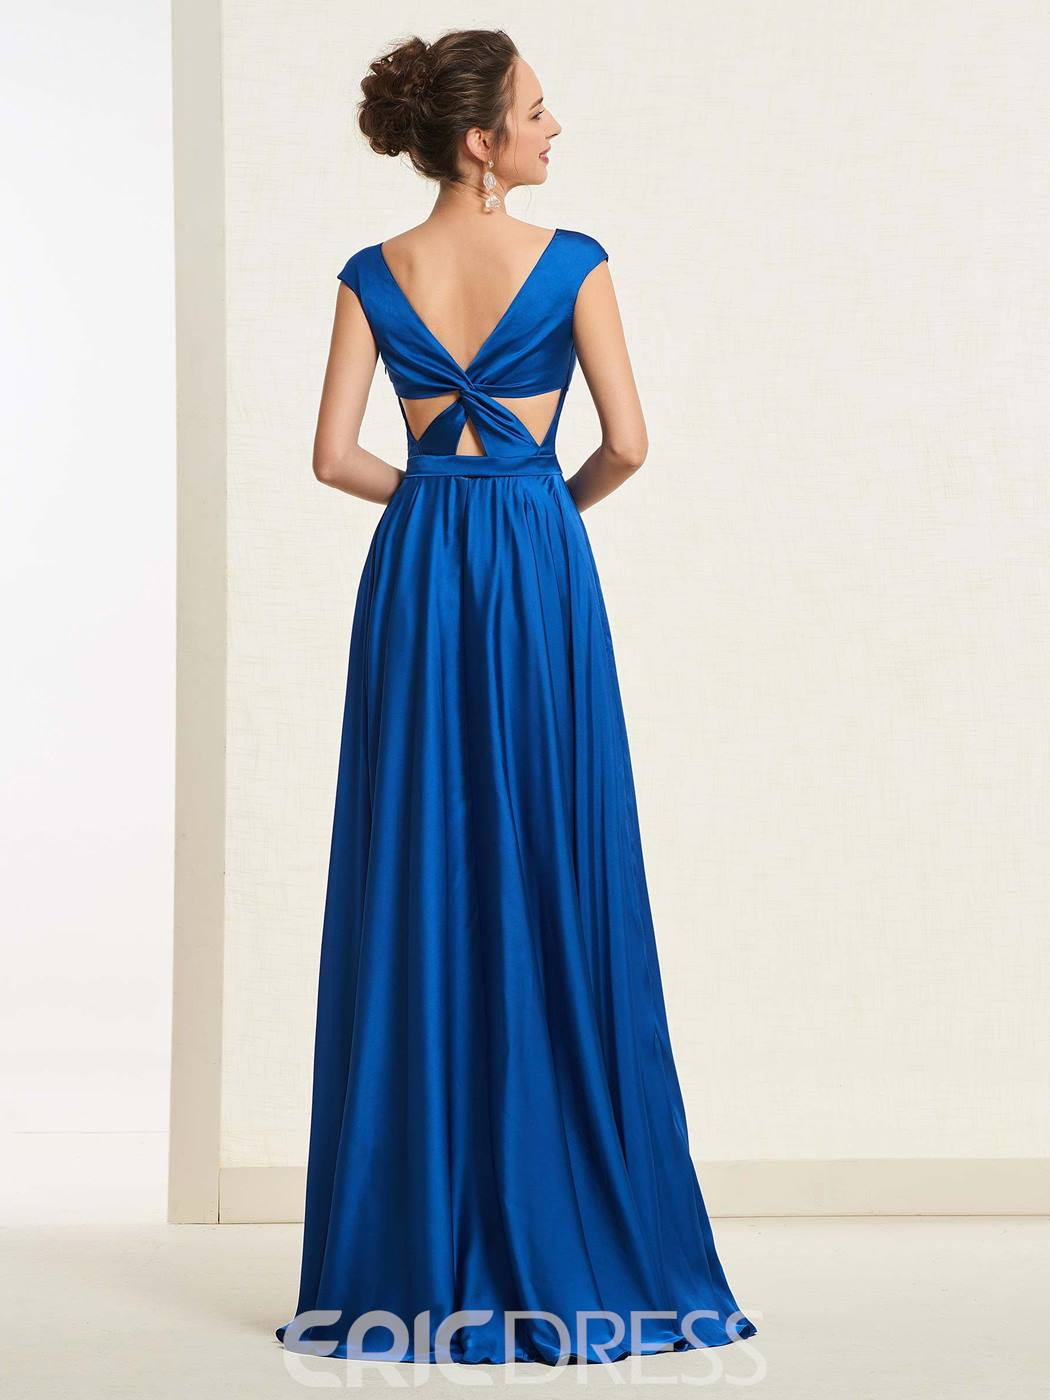 Ericdress Cap Sleeves V-Neck A-Line Prom Dress 2019